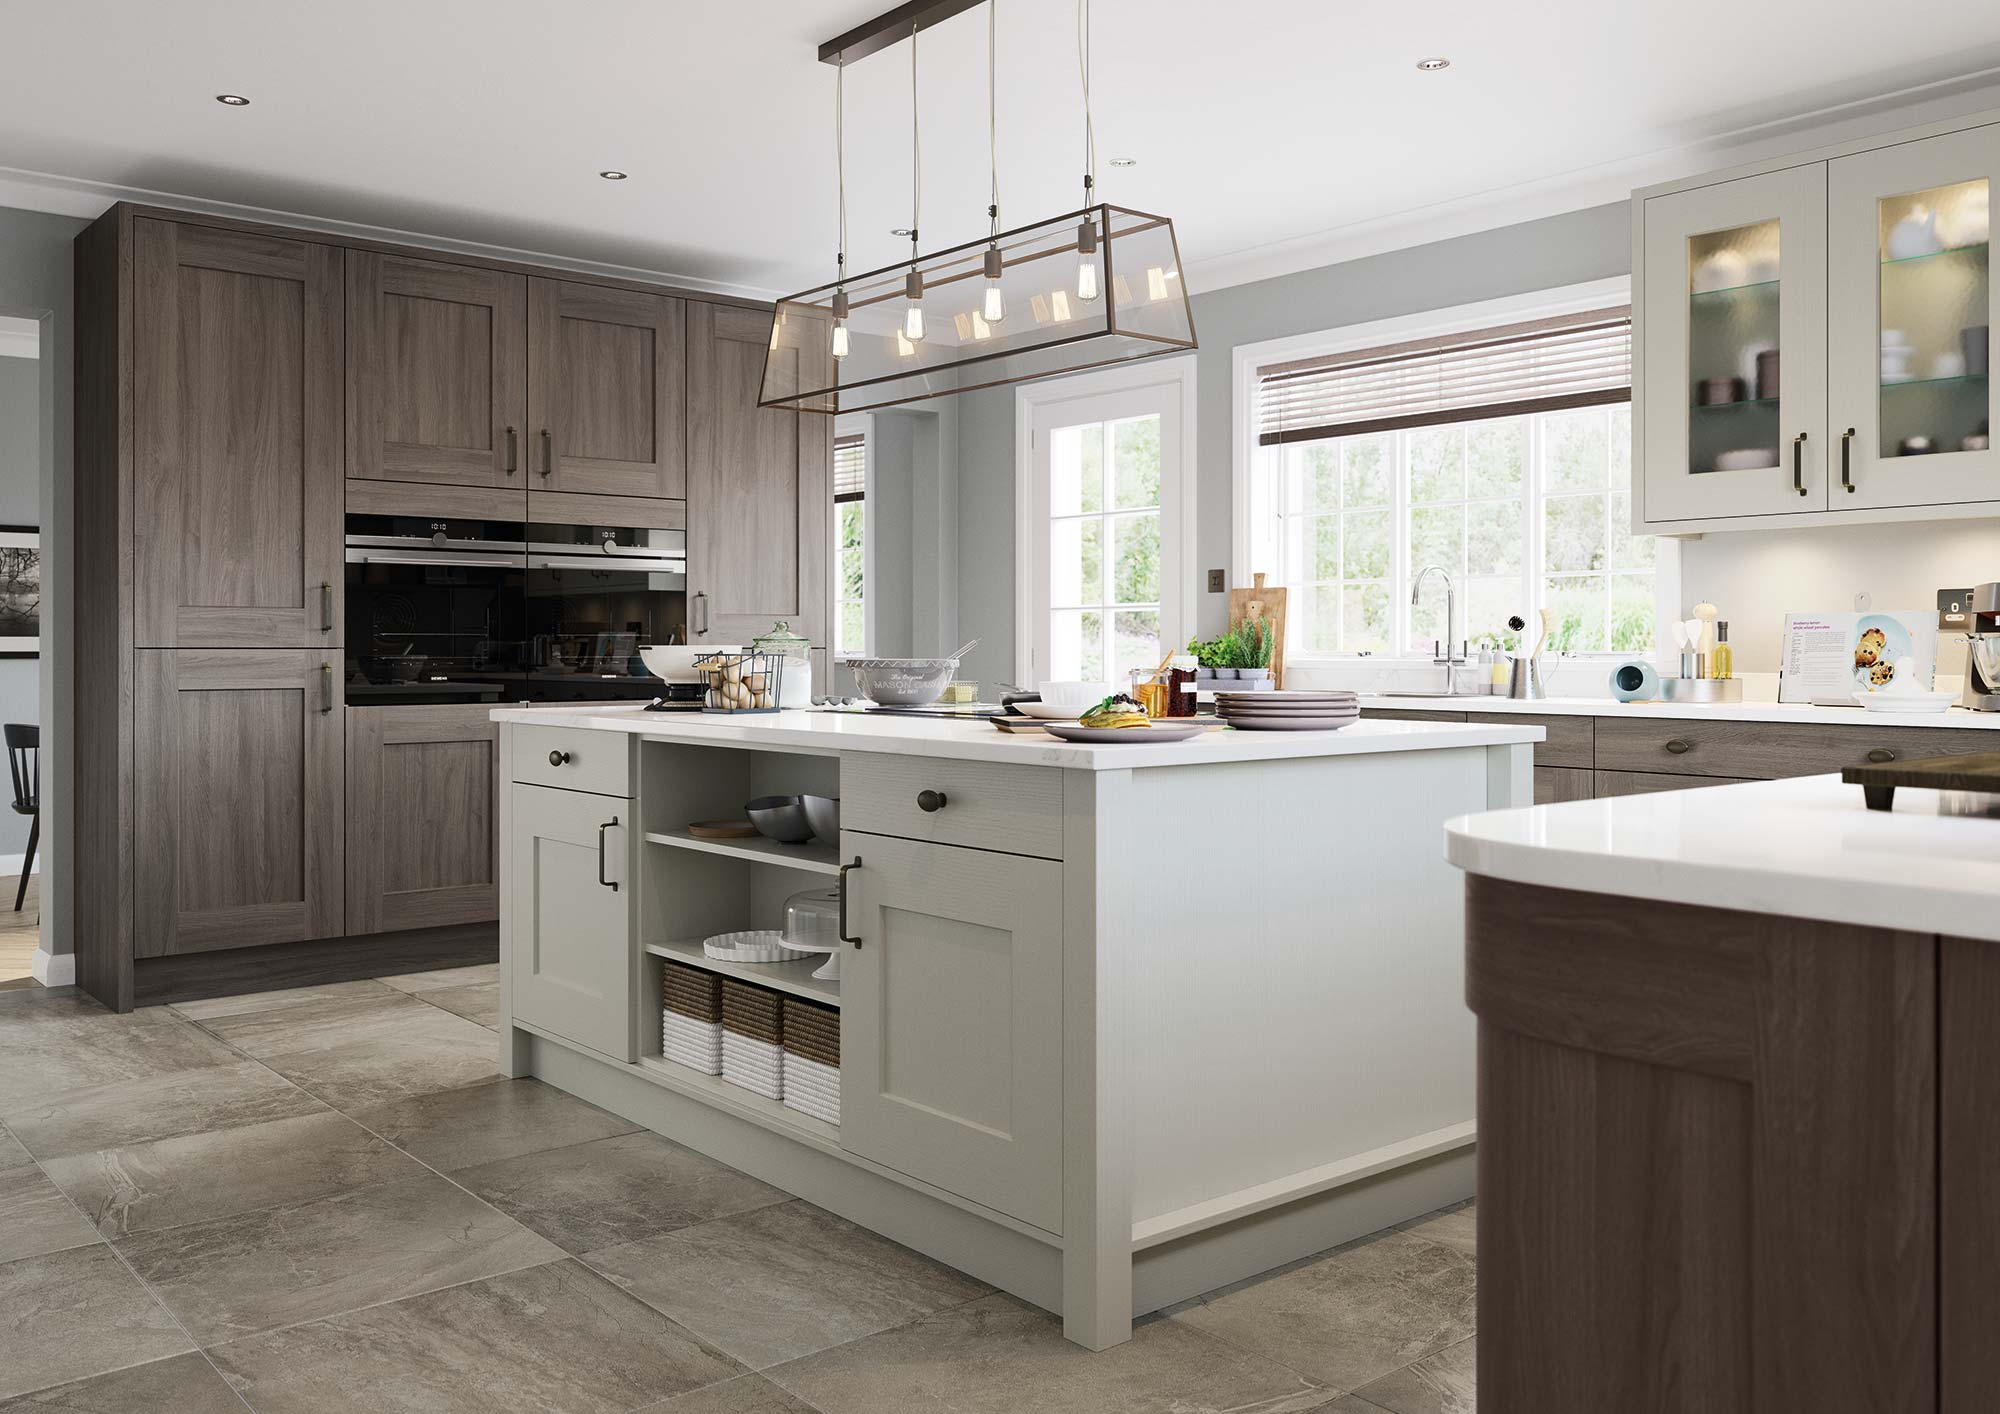 Contemporary shaker style kitchen painted light grey